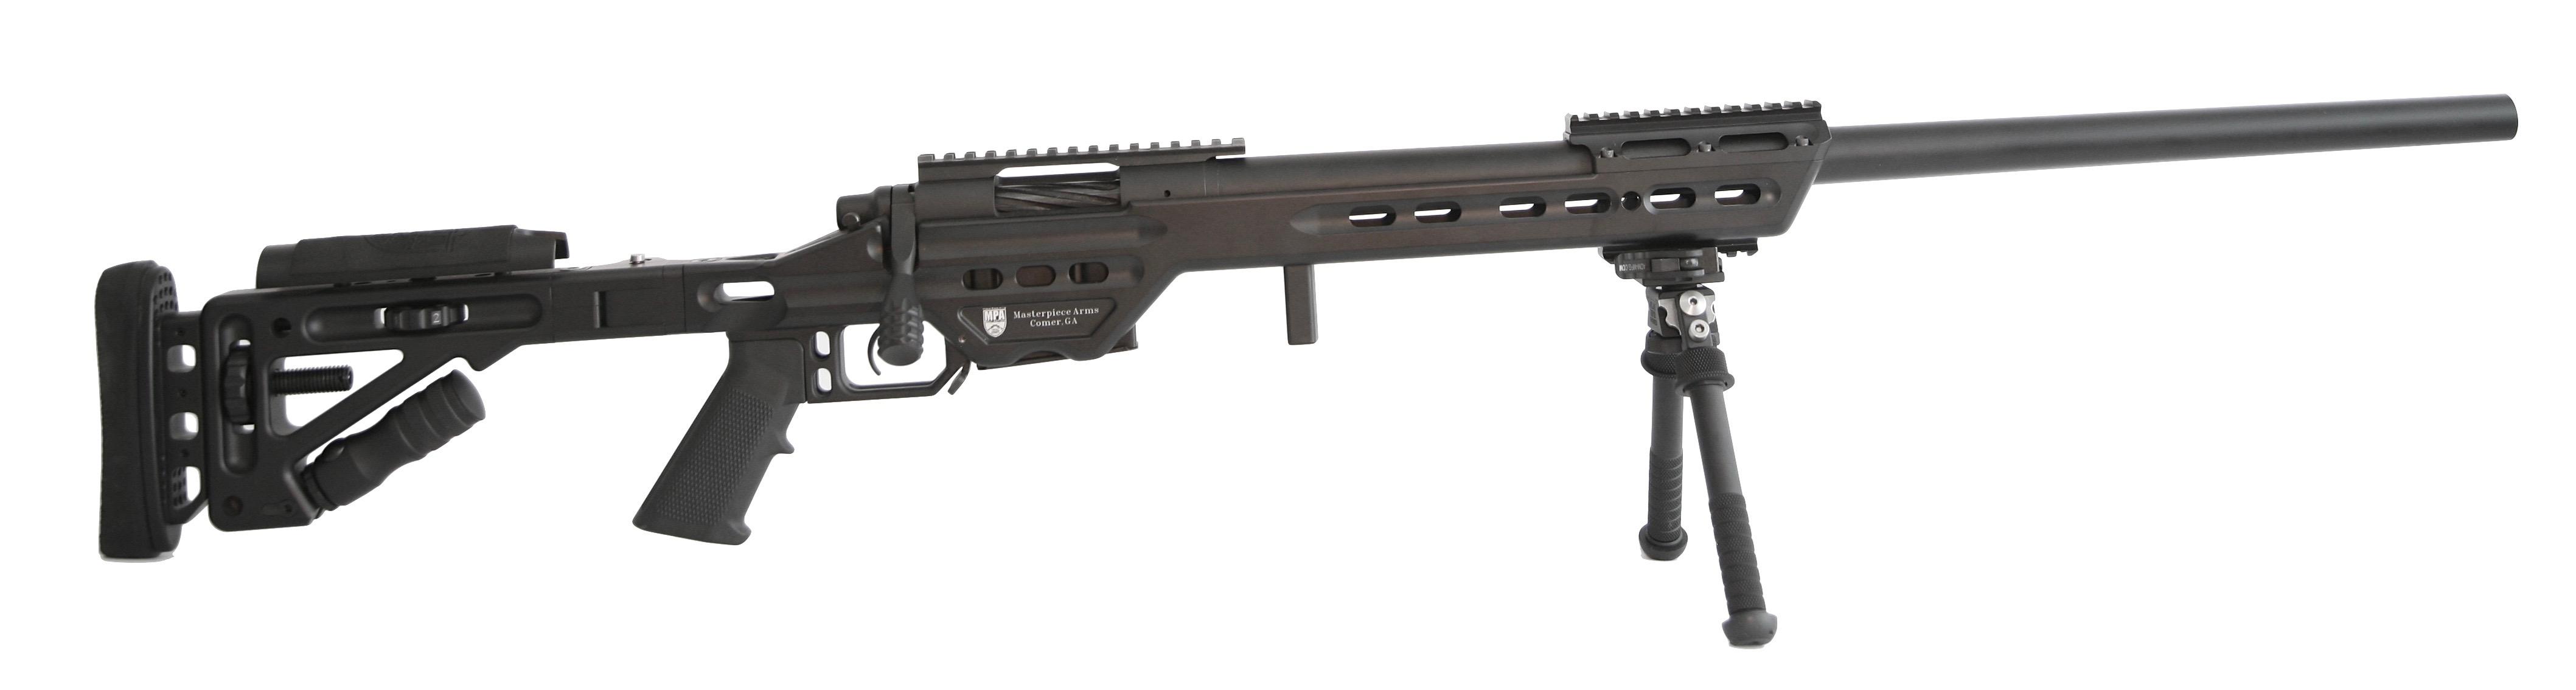 RR20906H Precision Rifle Series rifles